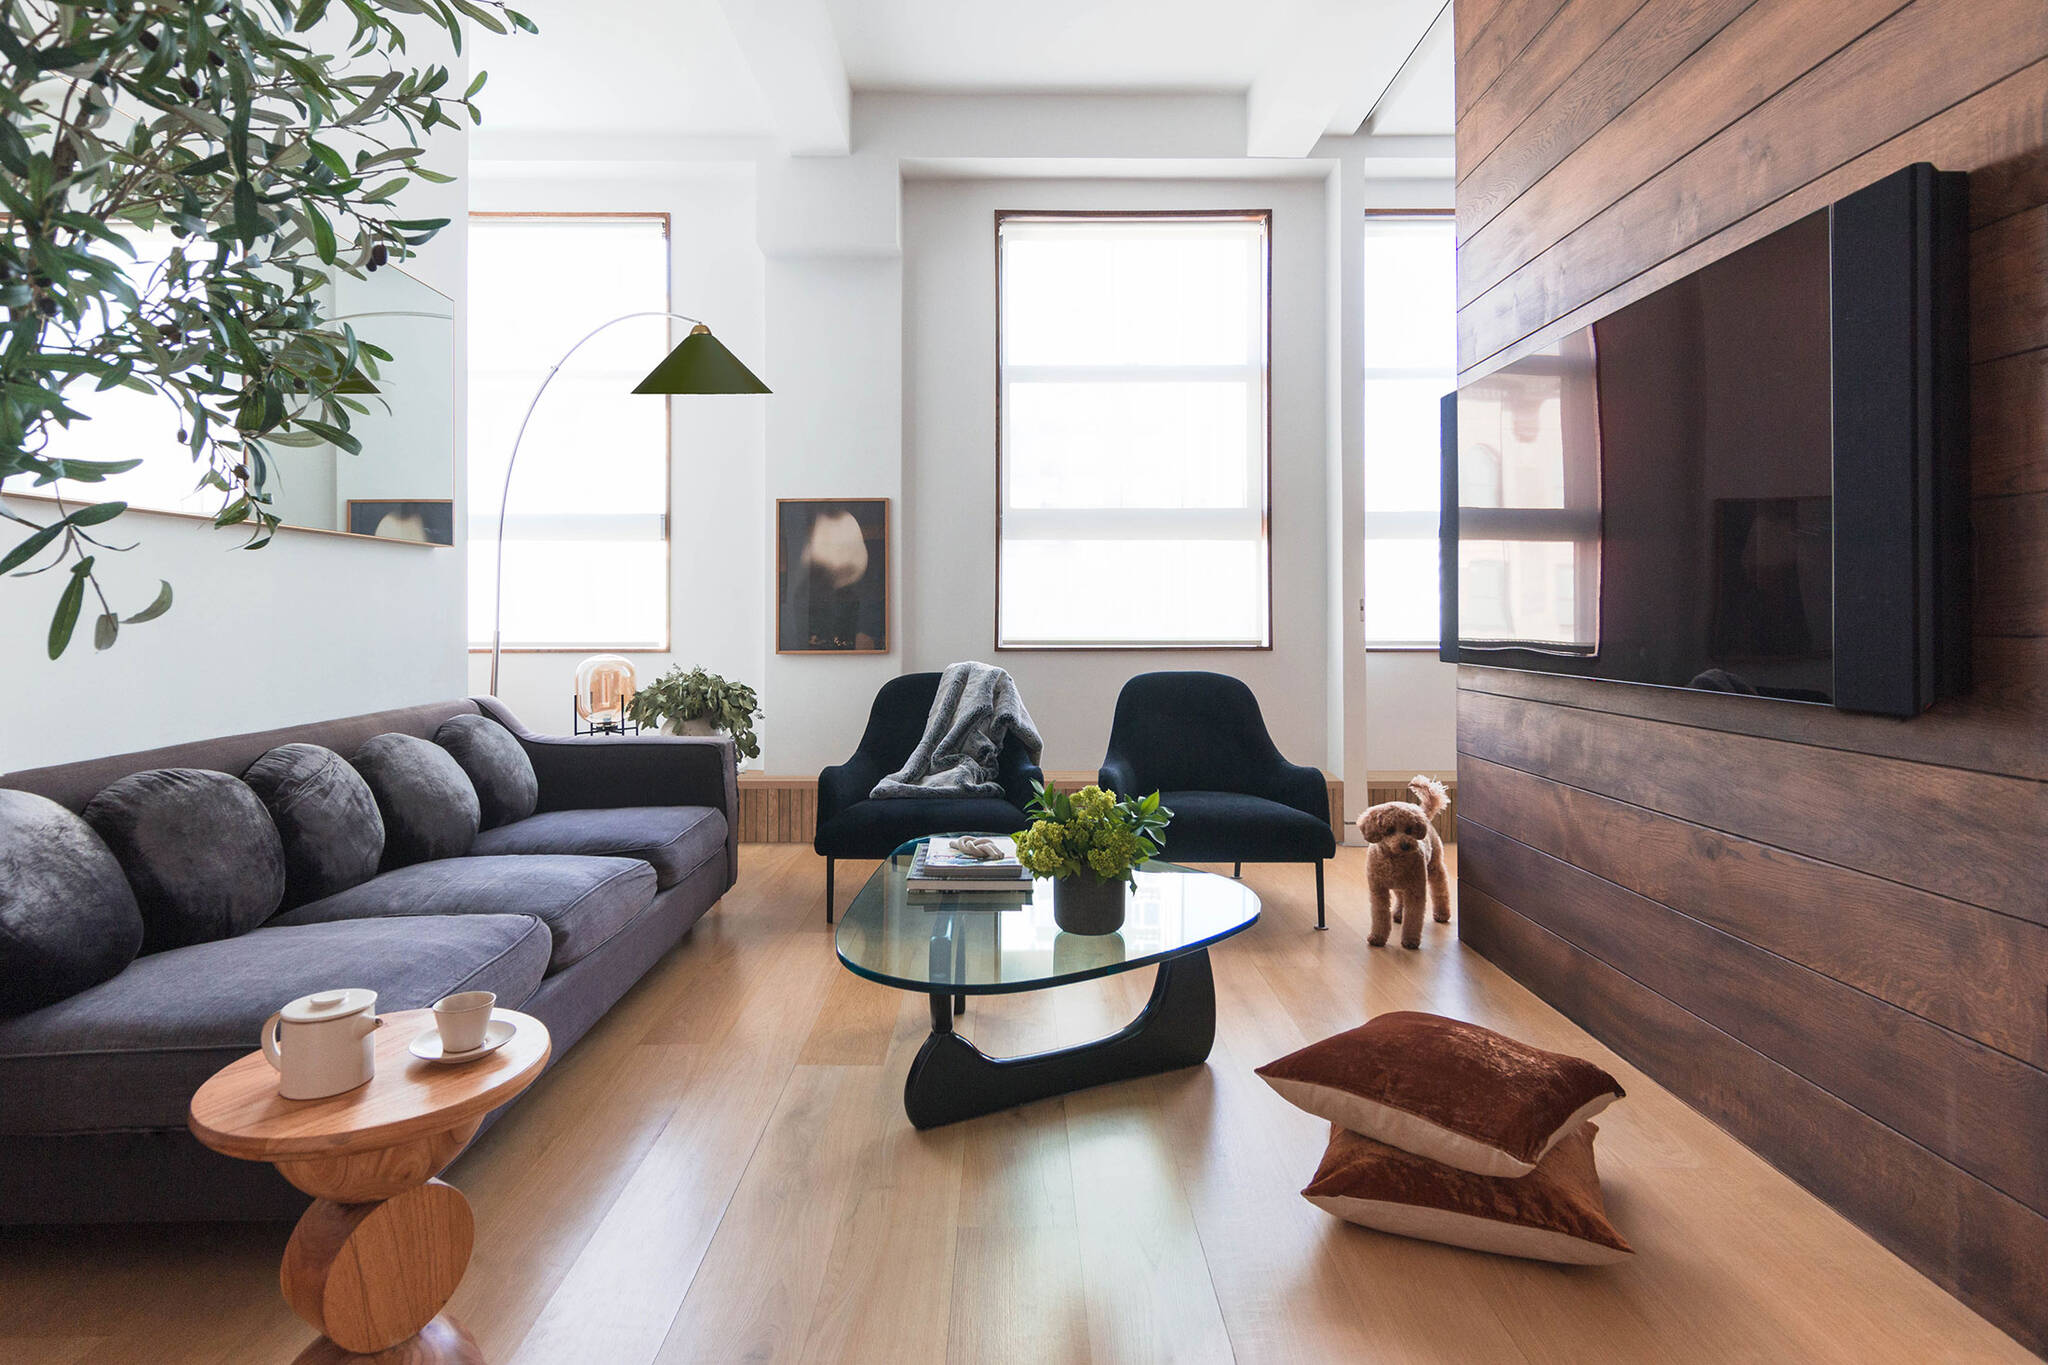 Living room of the Loft renovation project in Chelsea, New York City designed by the architecture studio Danny Forster & Architecture